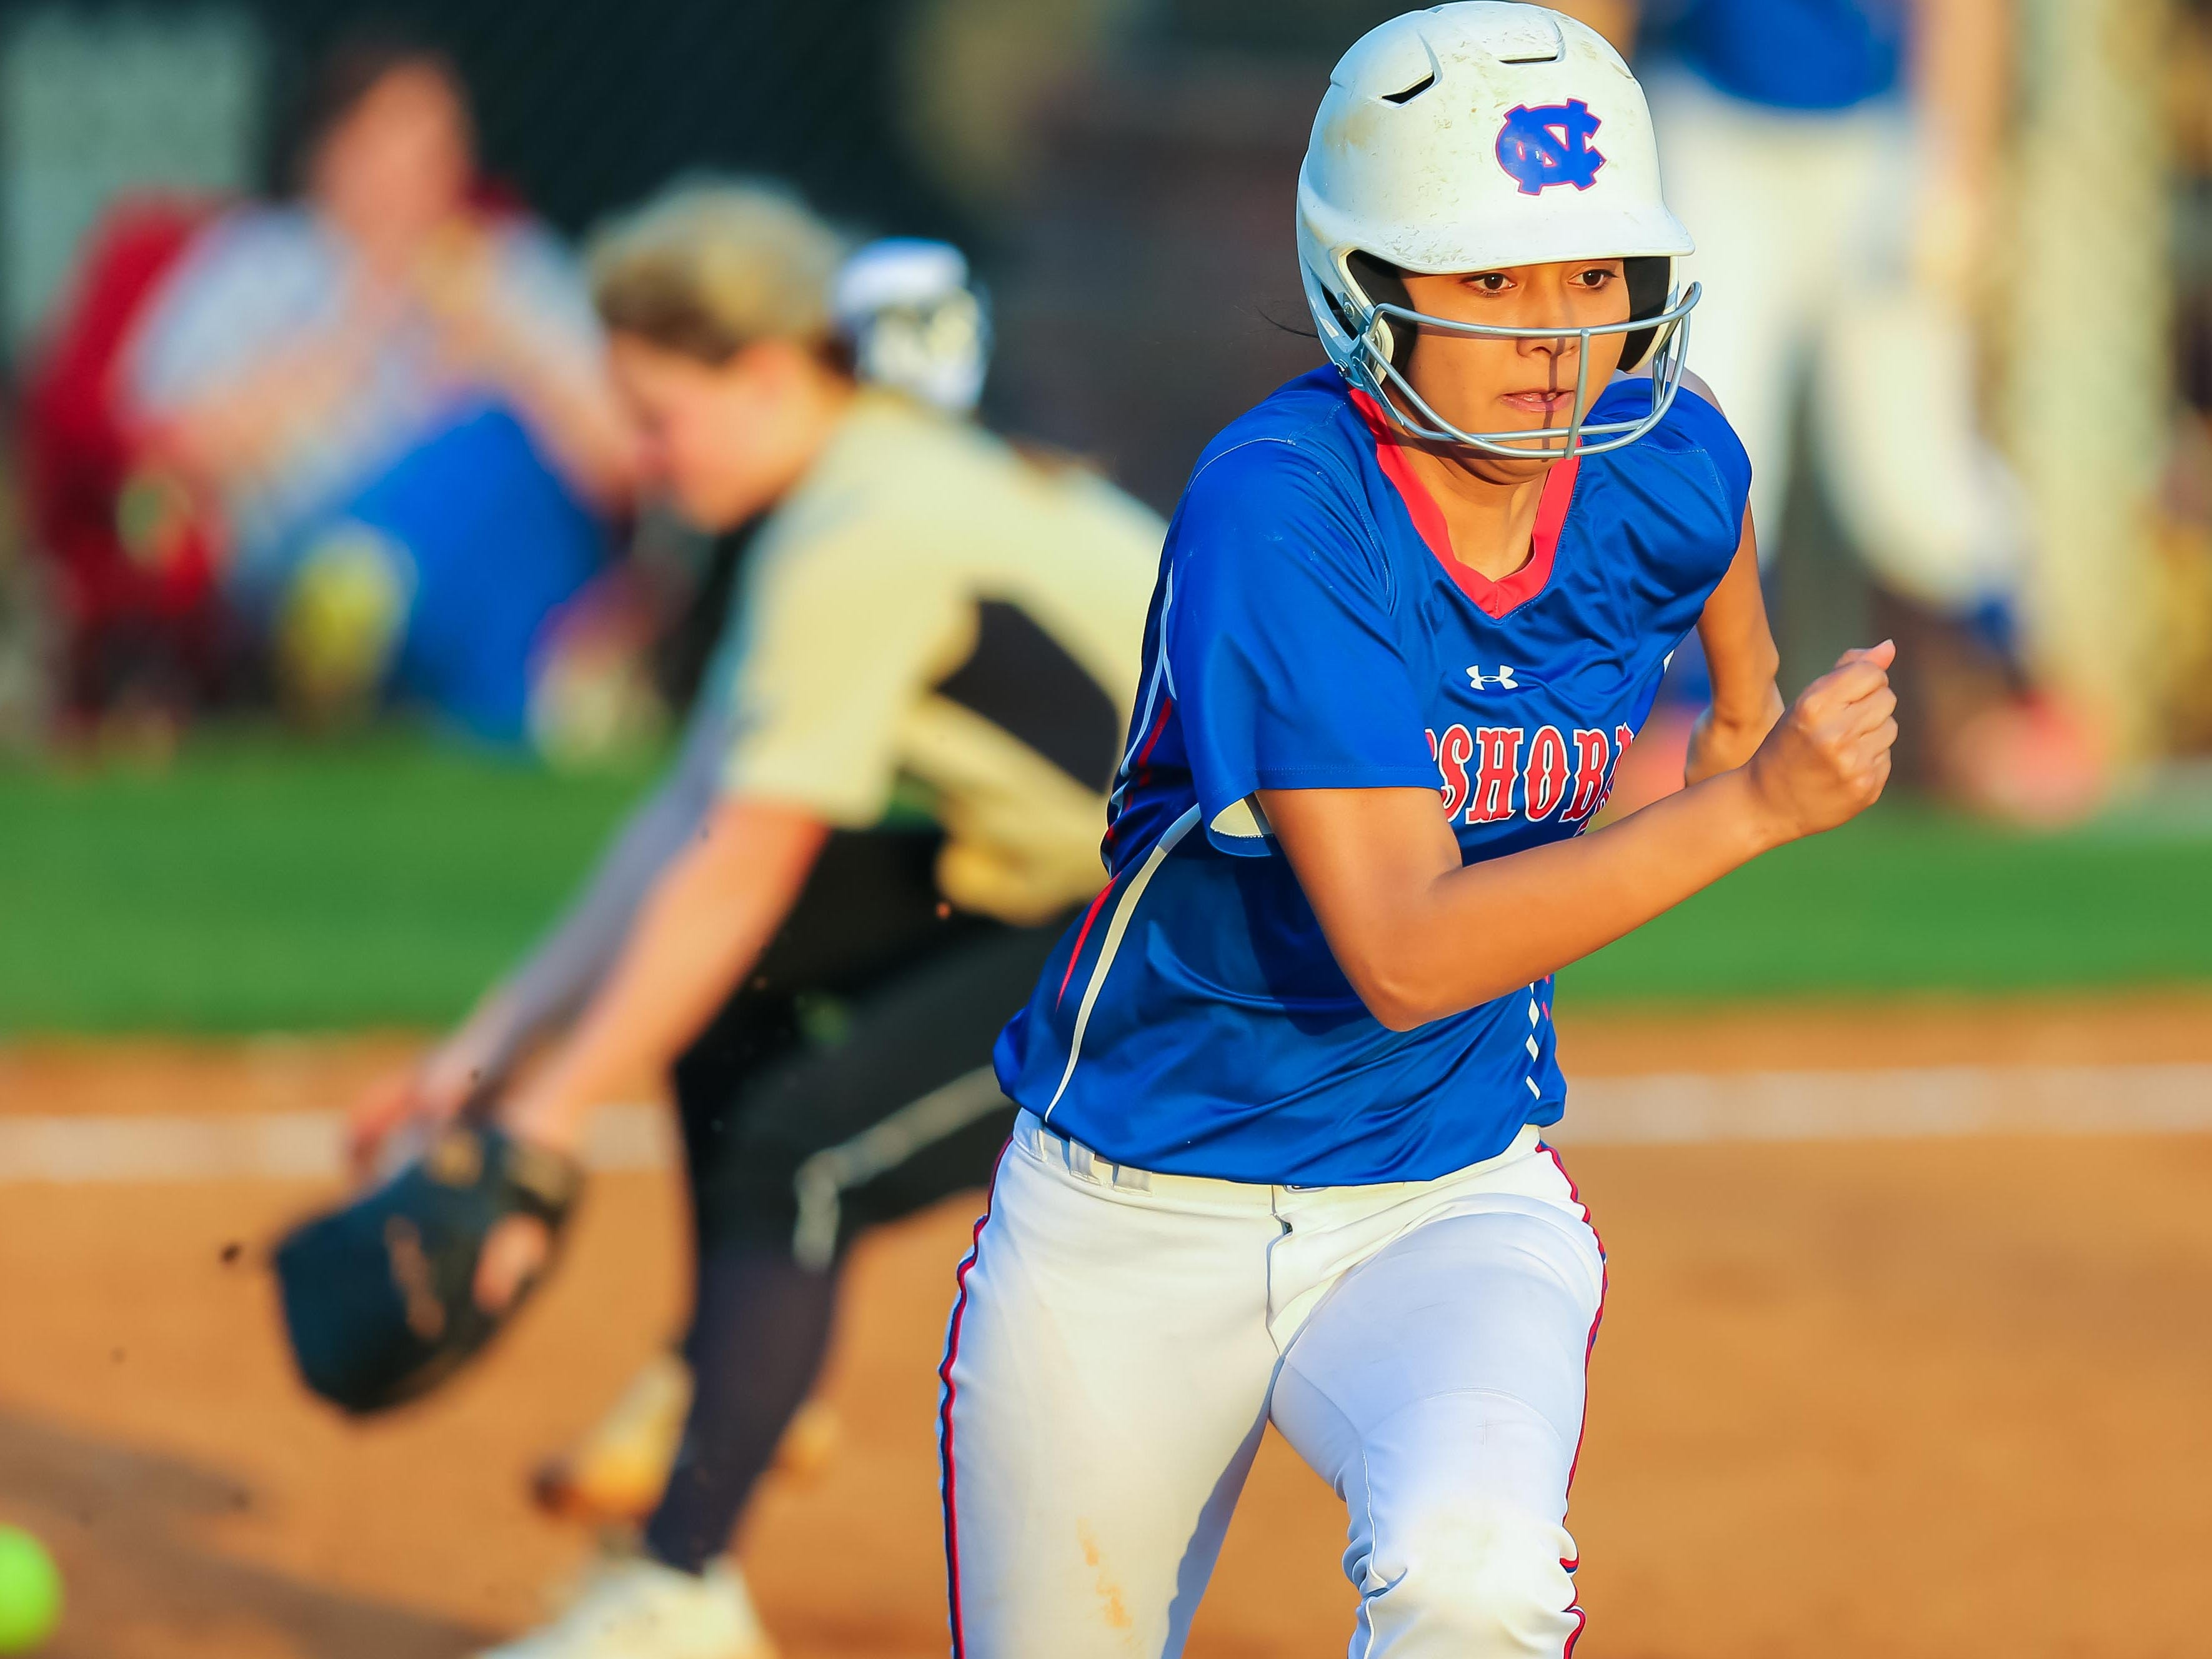 Neshoba Central shortstop Hailey Lunderman beats out a bunt as Neshoba Central beat Northwest Rankin, 6-5.